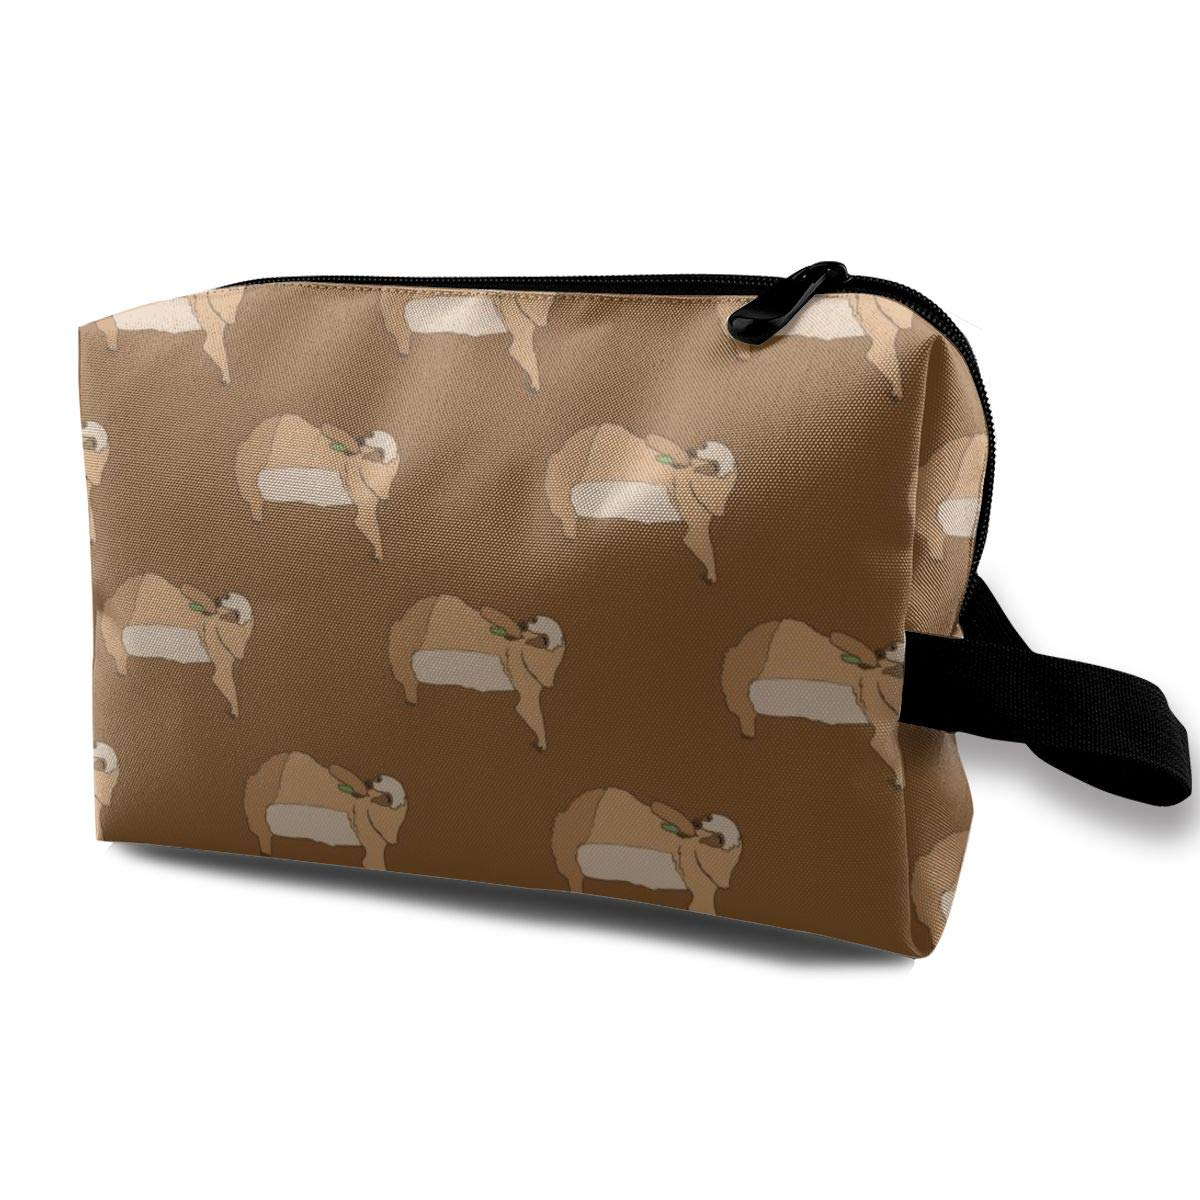 Sloth Eating Leaves Makeup Bag Pouch Purse Cosmetic Organizer for Women,Portable Waterproof and High Capacity,for Lipstick Eyeshadow Hairbrushes